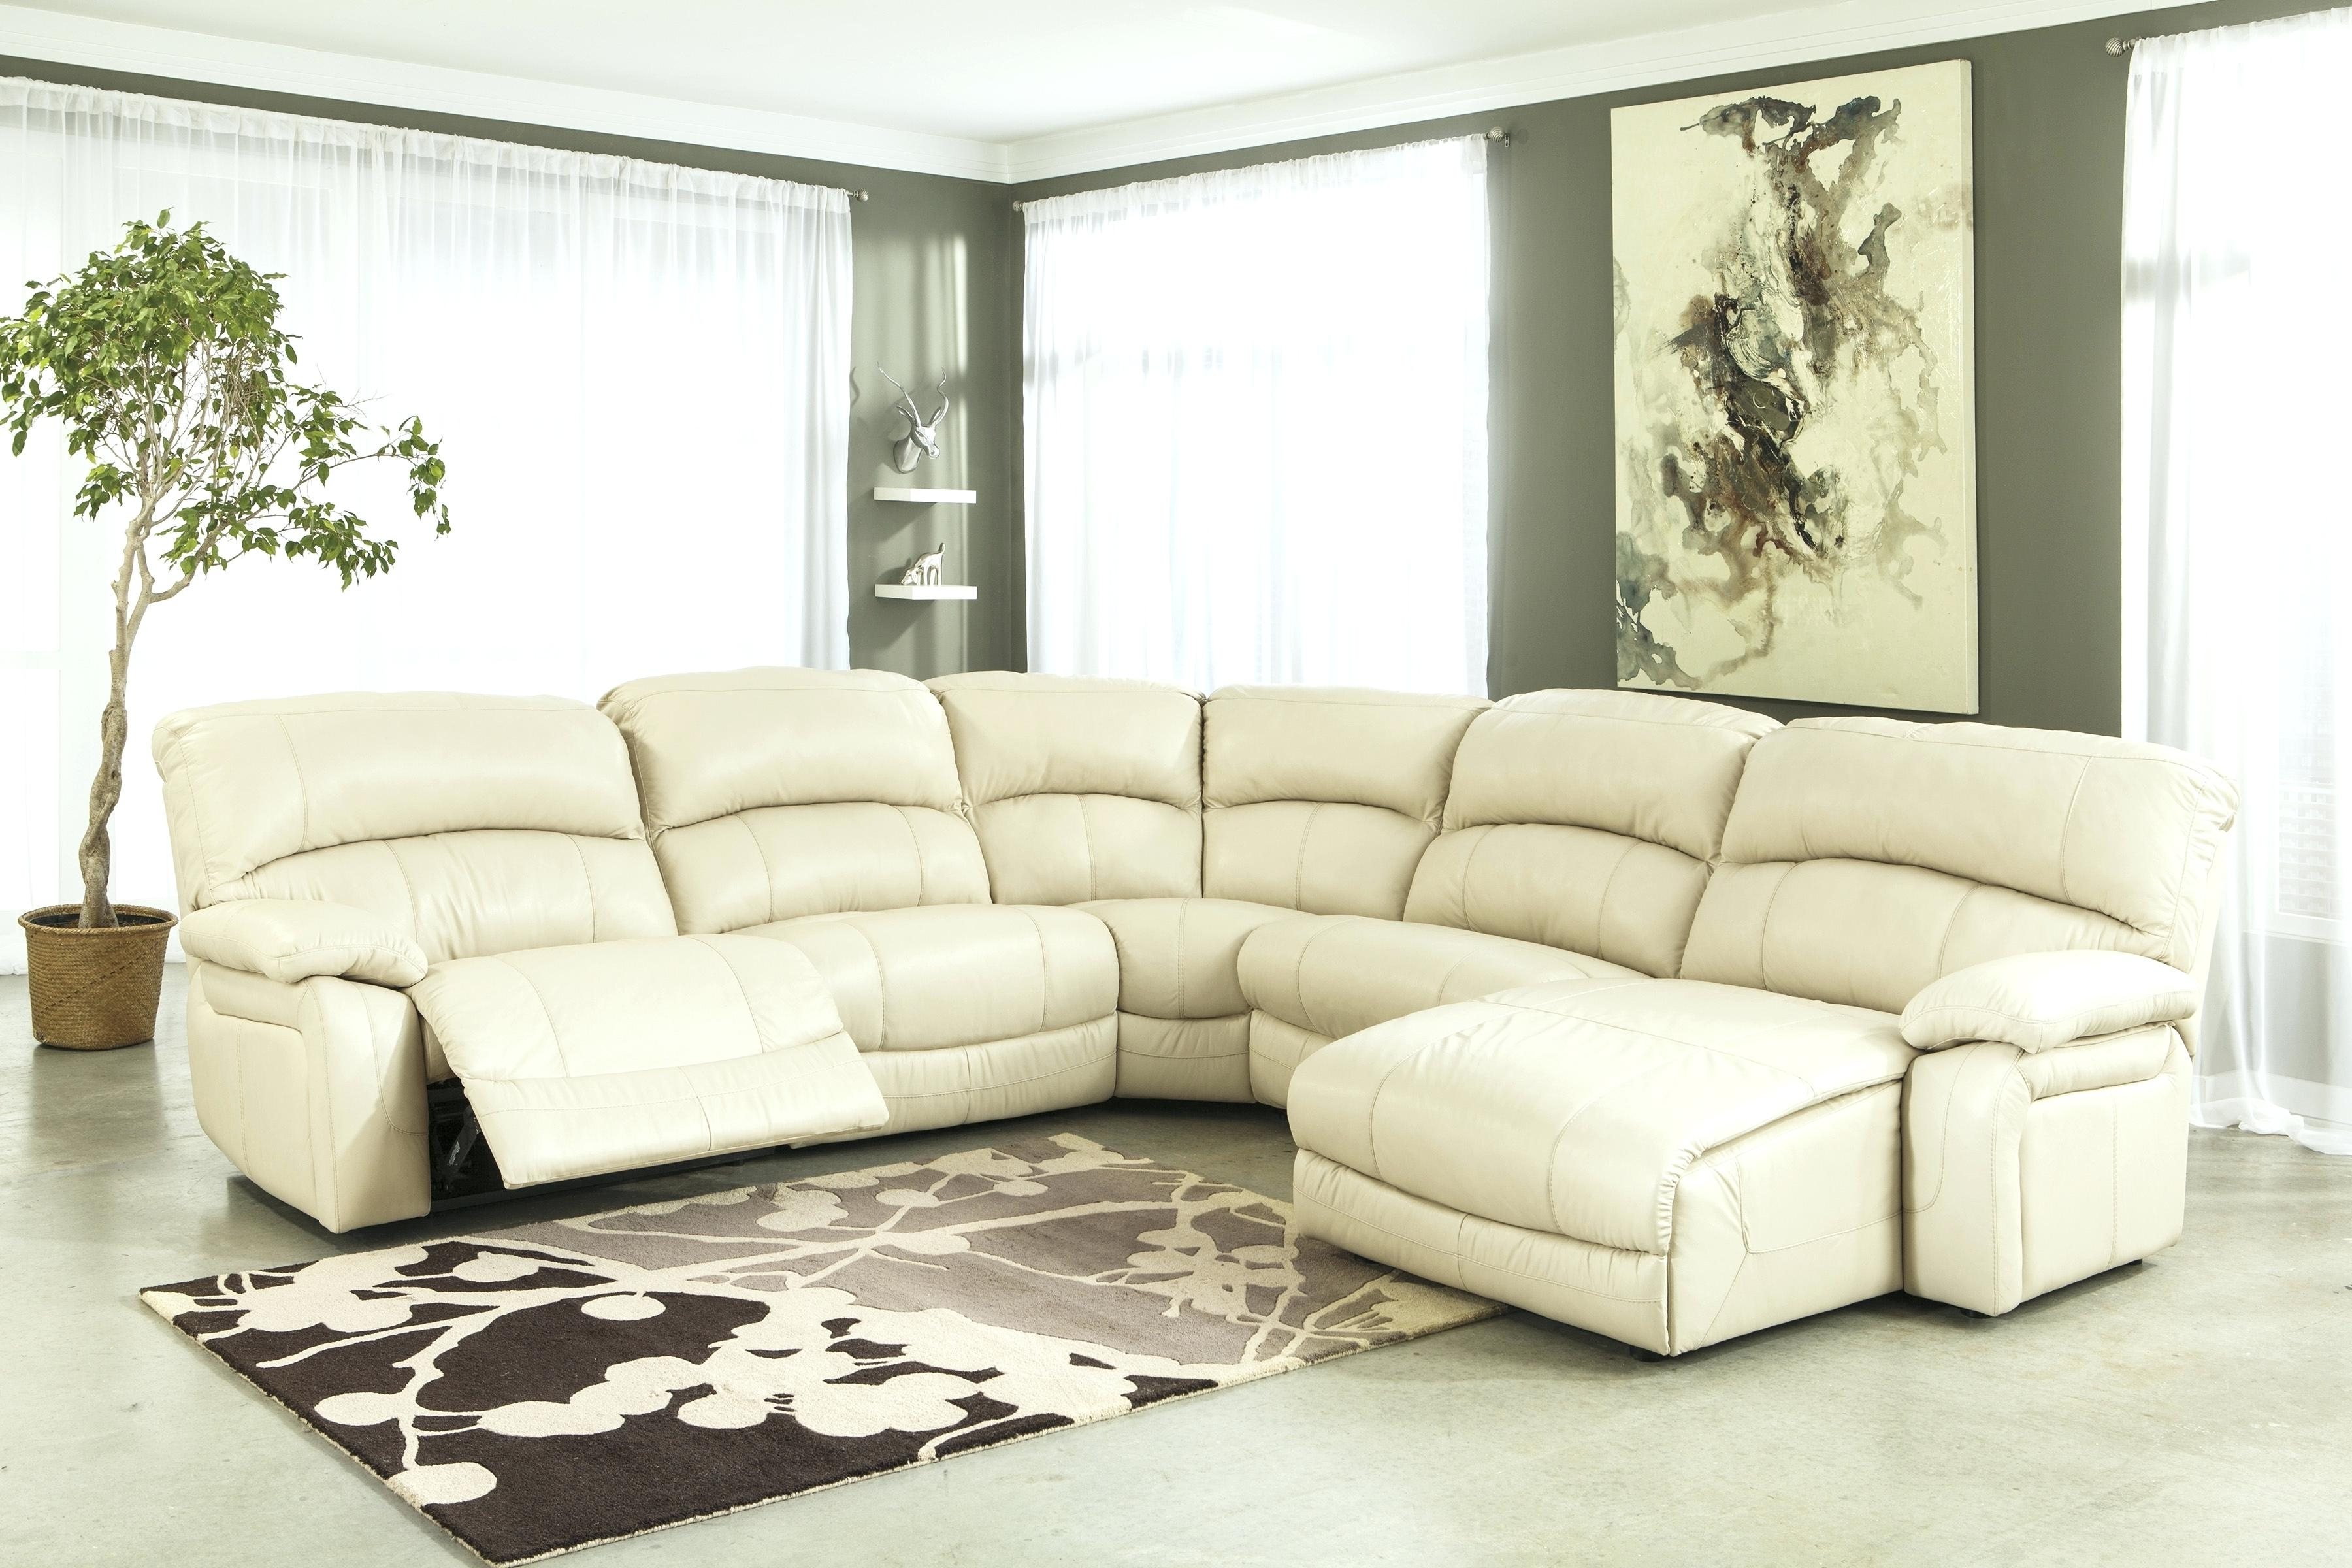 Most Recently Released Sofas: Mesmerizing Macys Sectional Sofa For Best Living Room Decor In Macys Wall Art (View 13 of 15)